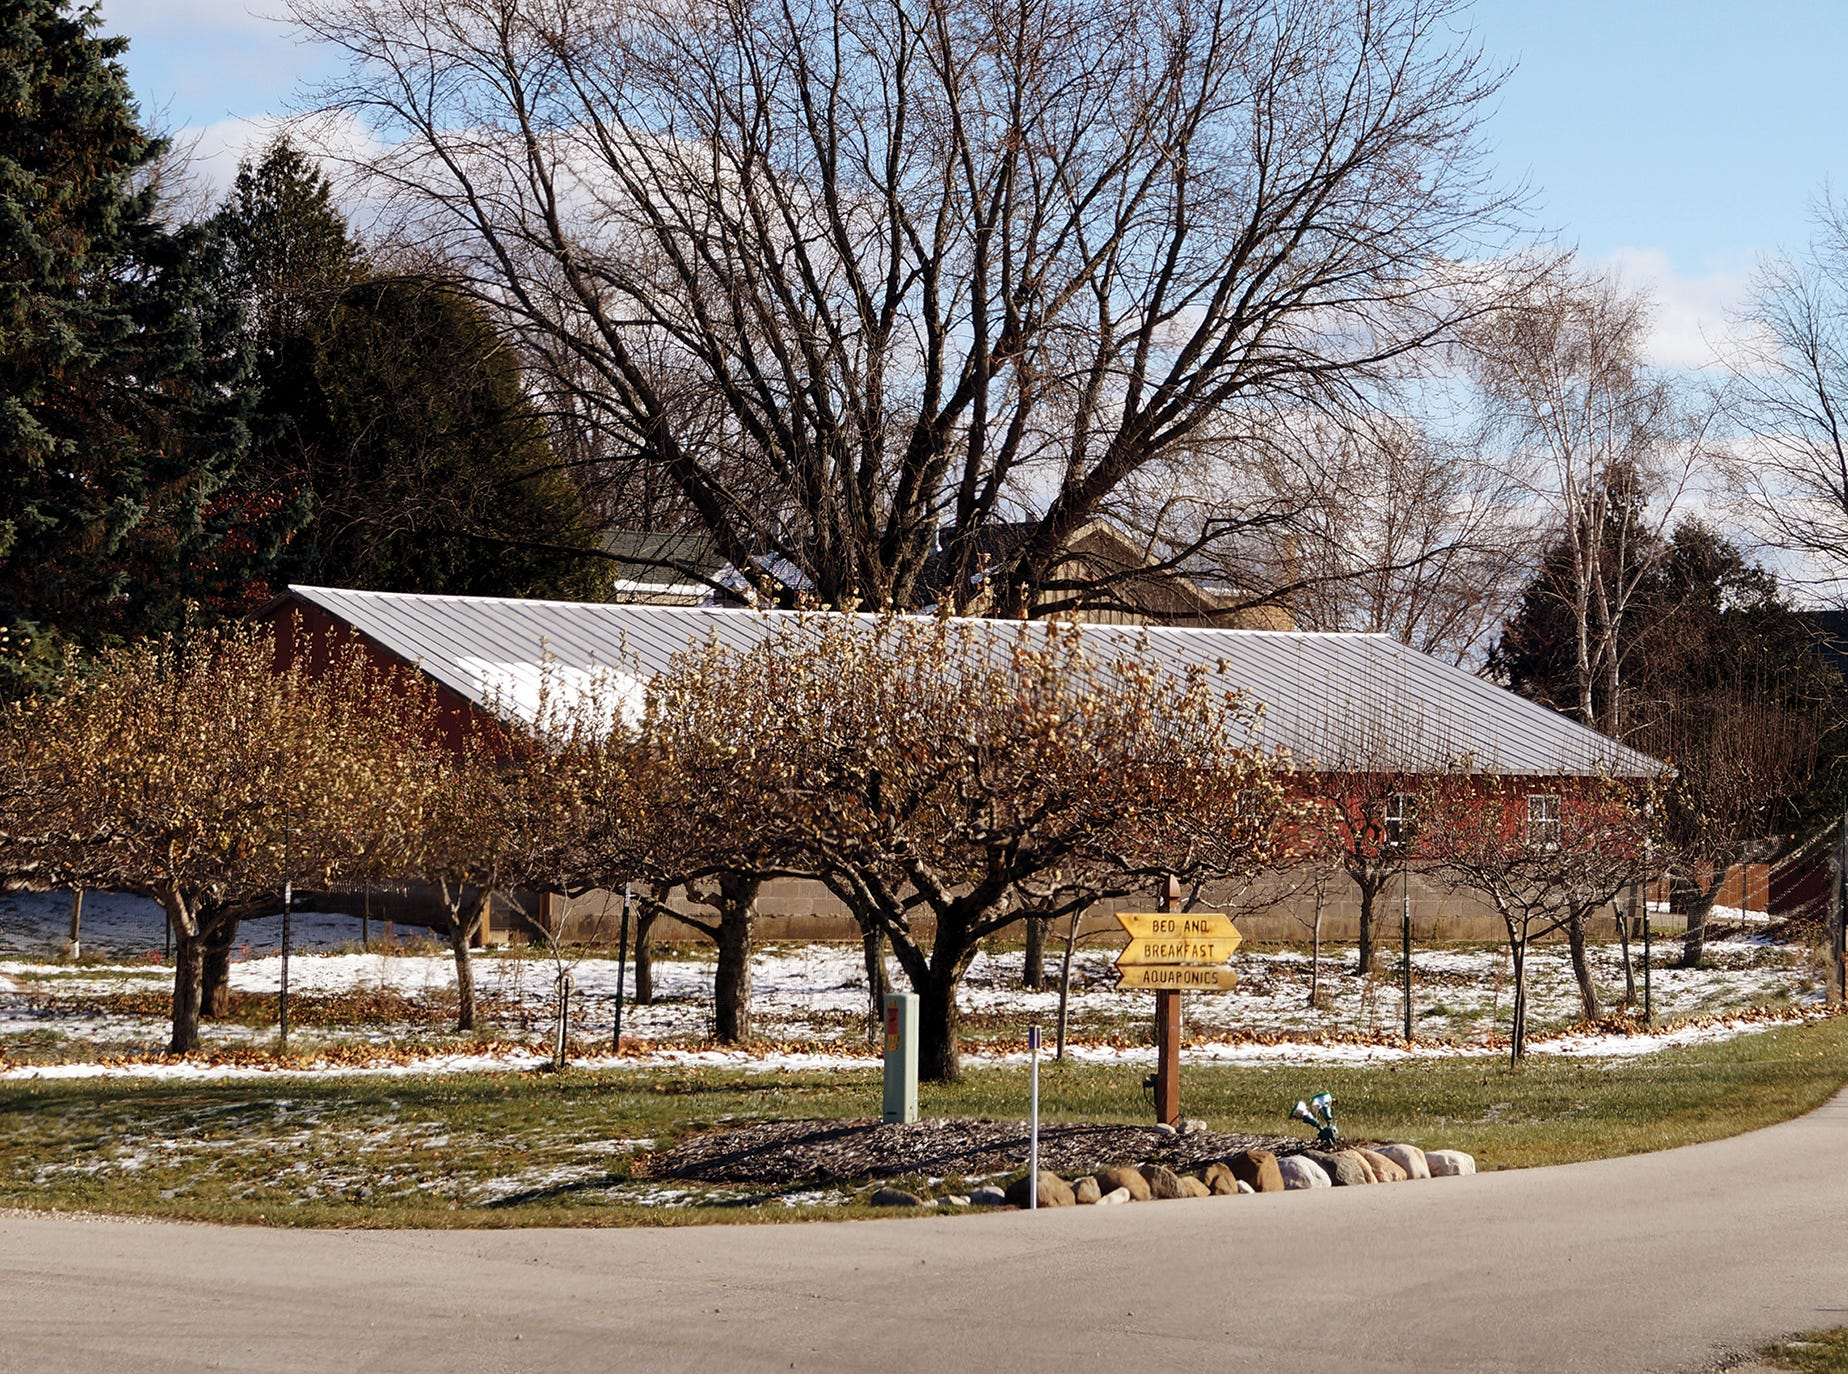 Besides aquaponics, Nate and Mary also have an event barn and manage a bed and breakfast.